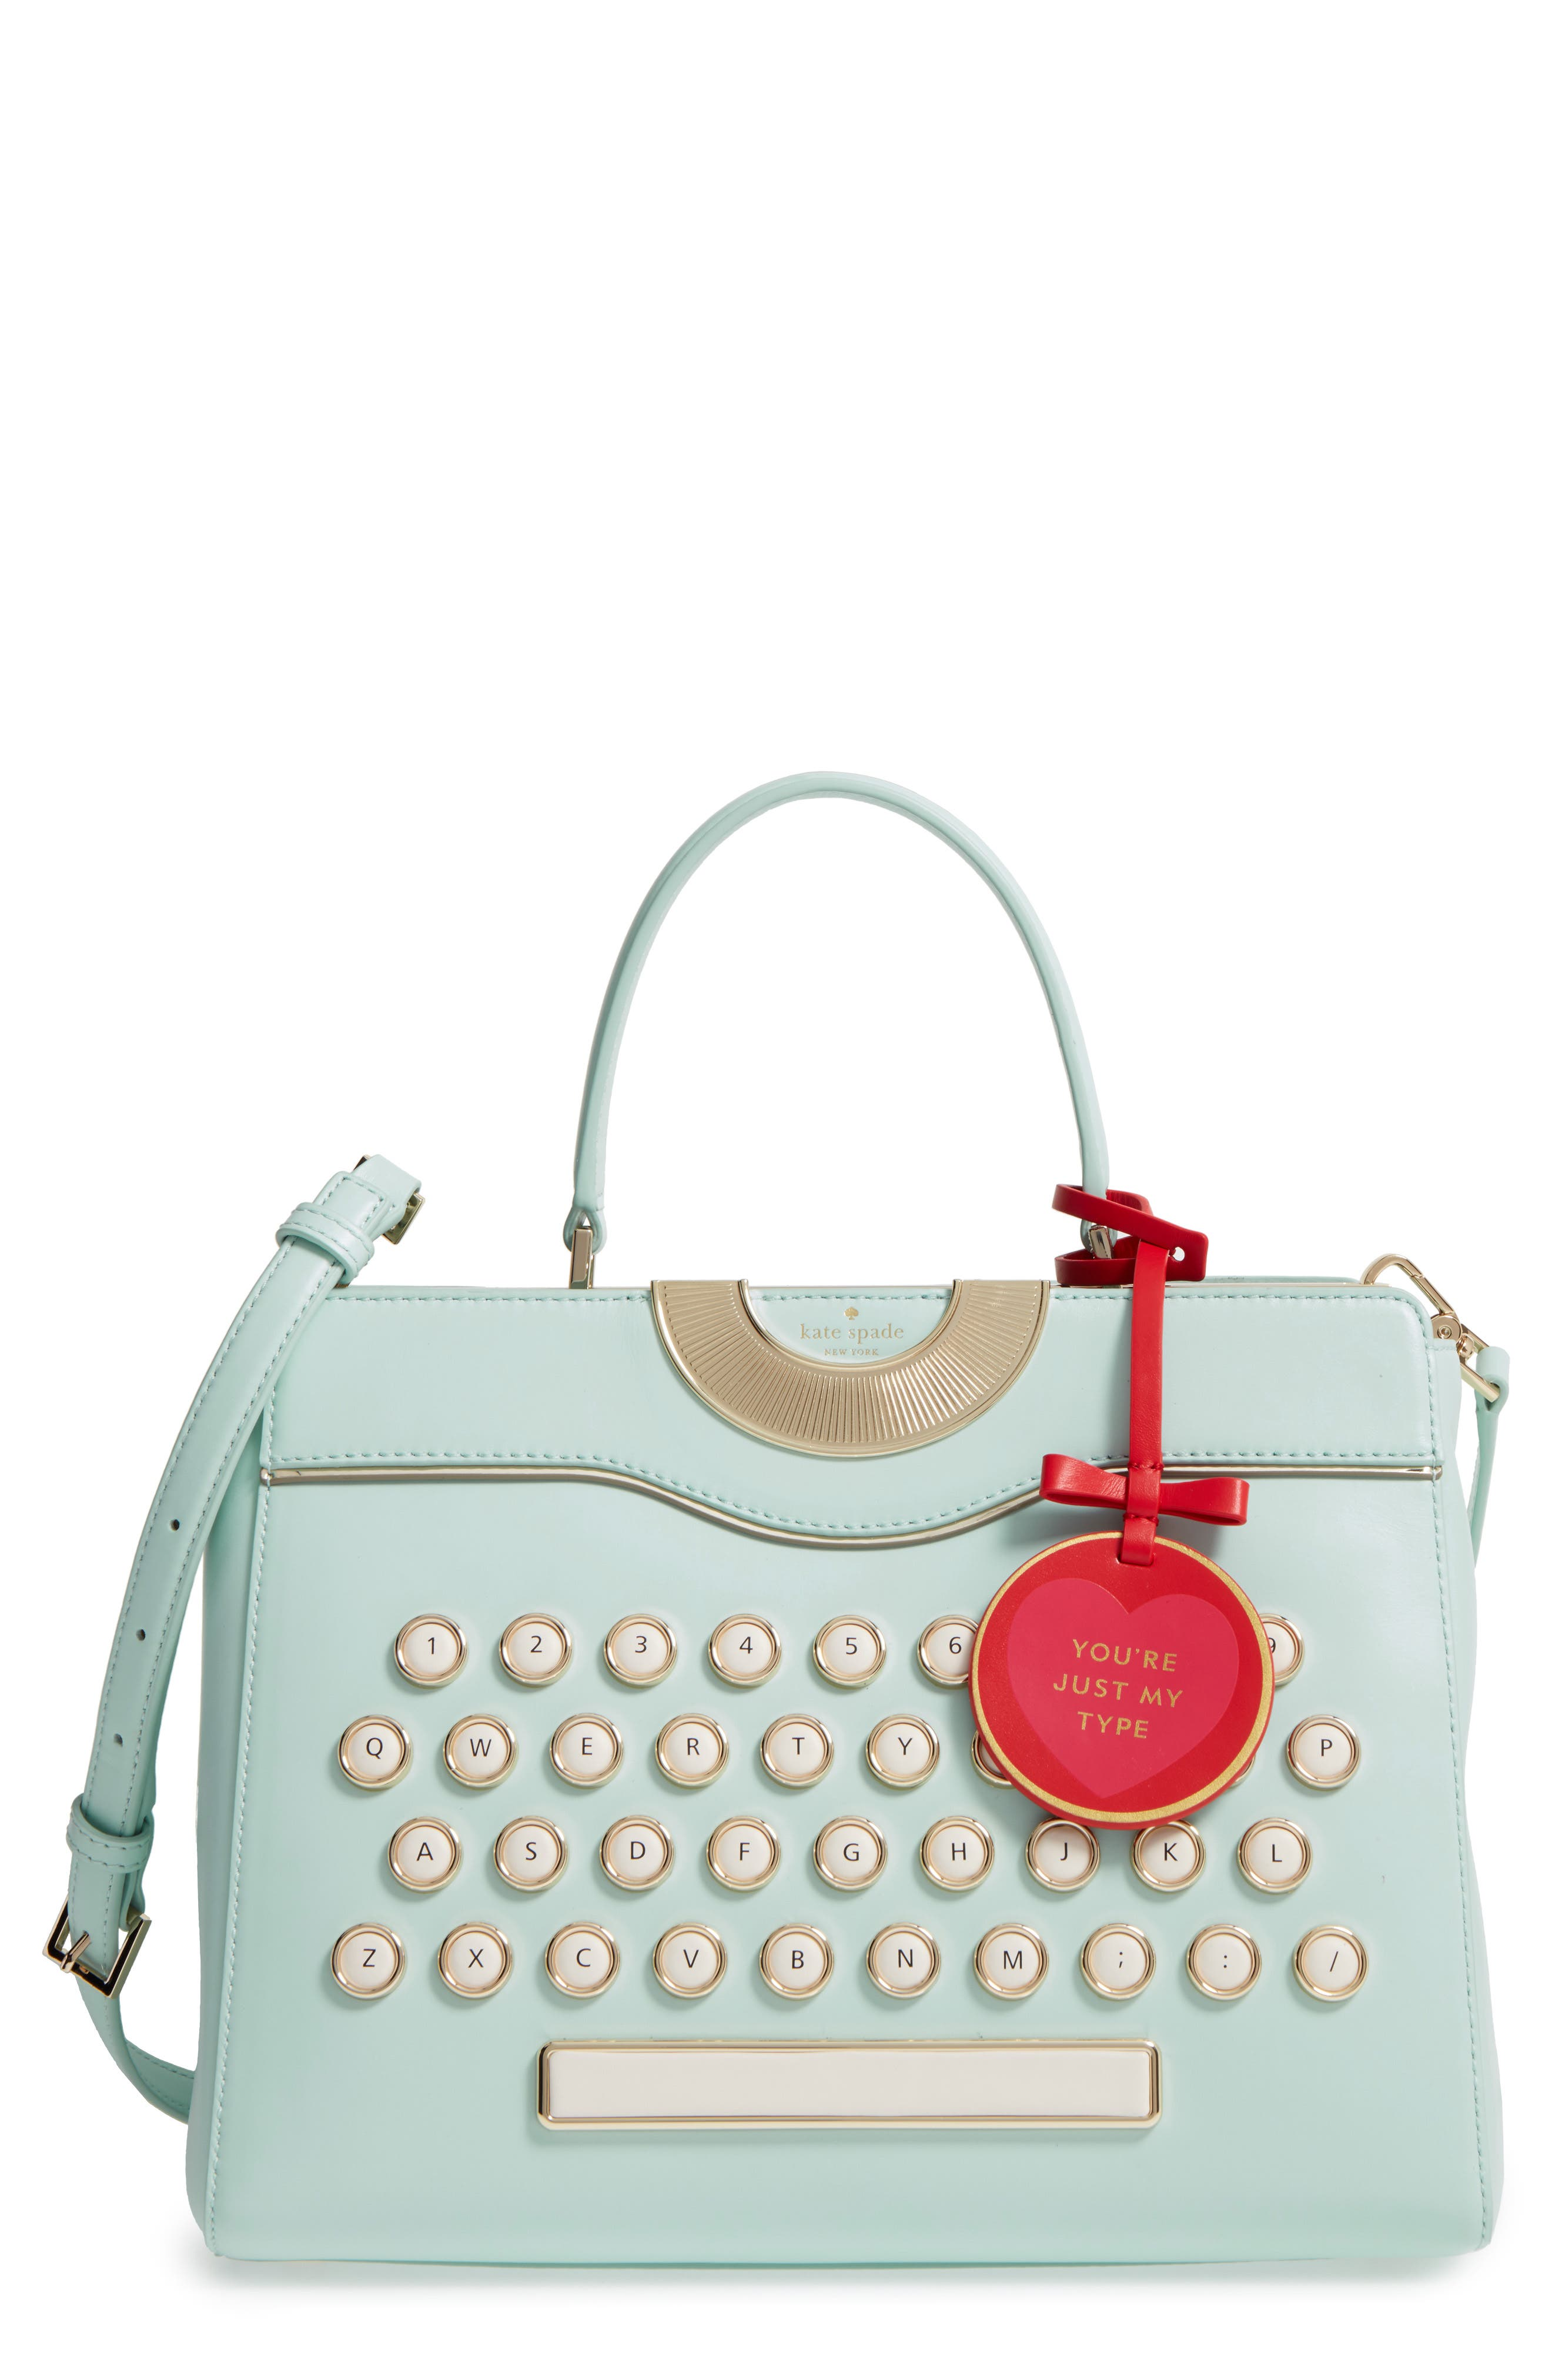 be mine - typewriter leather satchel,                             Main thumbnail 1, color,                             474